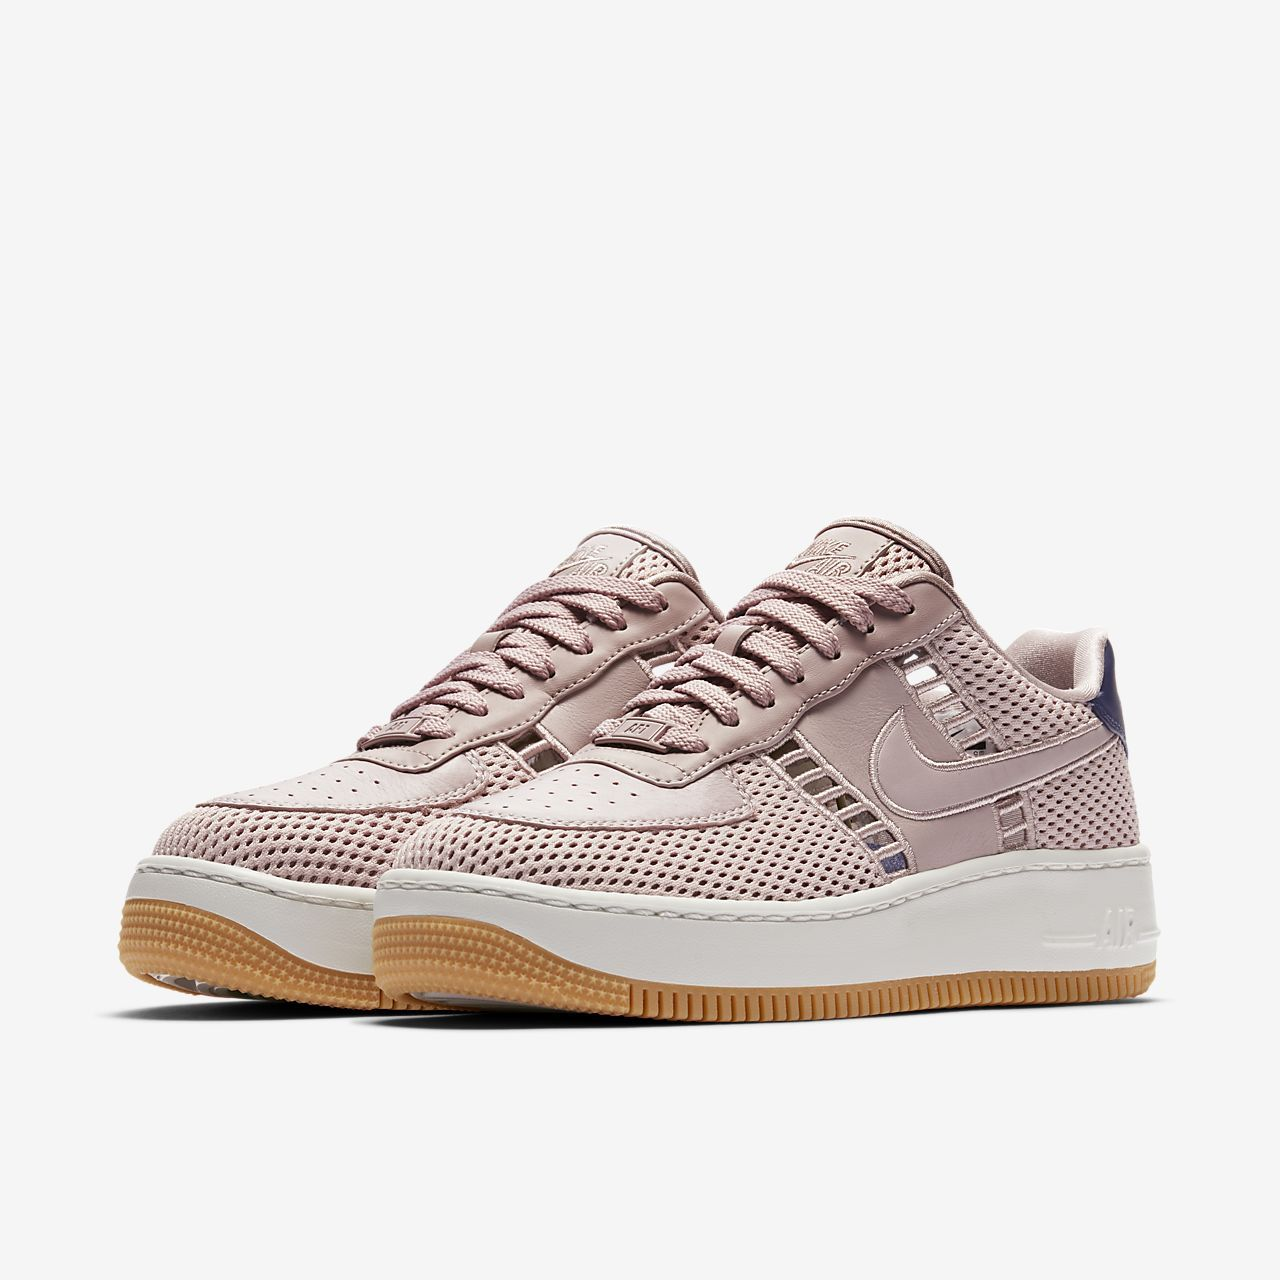 quality design 5ef91 577f1 Chaussure Nike Air Force 1 Upstep SI pour Femme